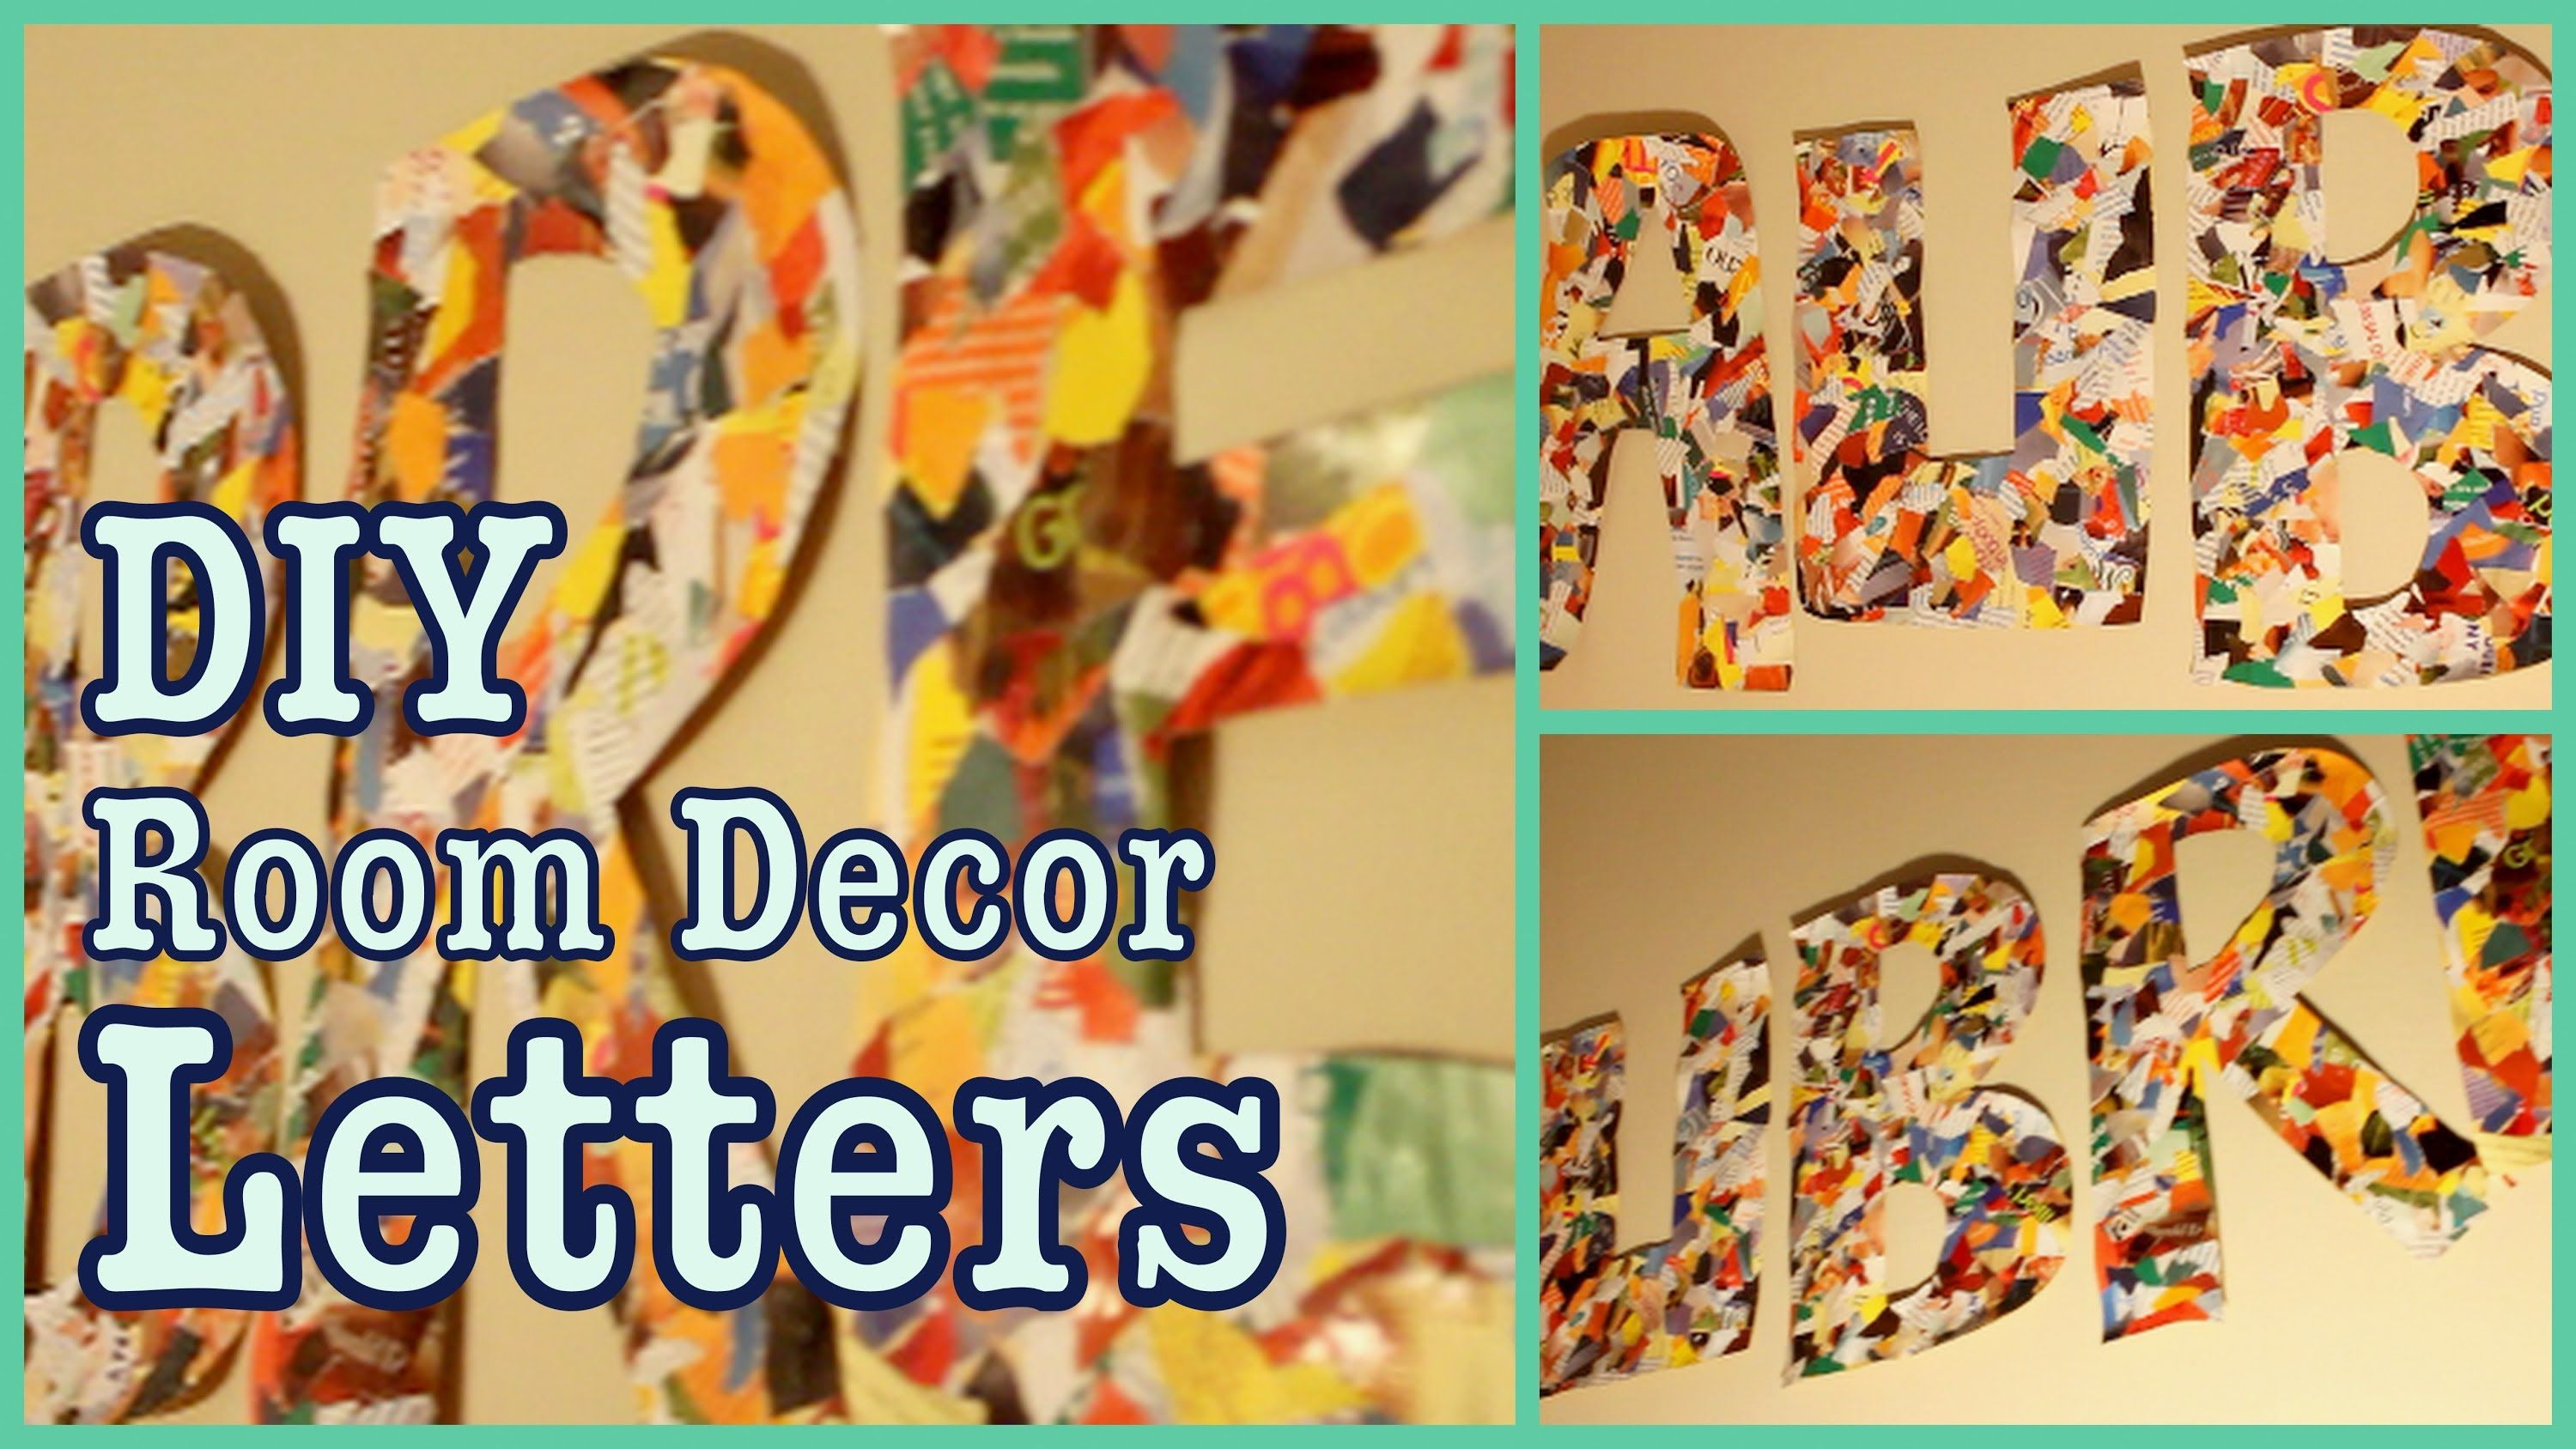 DIY: Room Decor Letters! ✽ Wall Art Decor | DIY ~ LETTERS ...